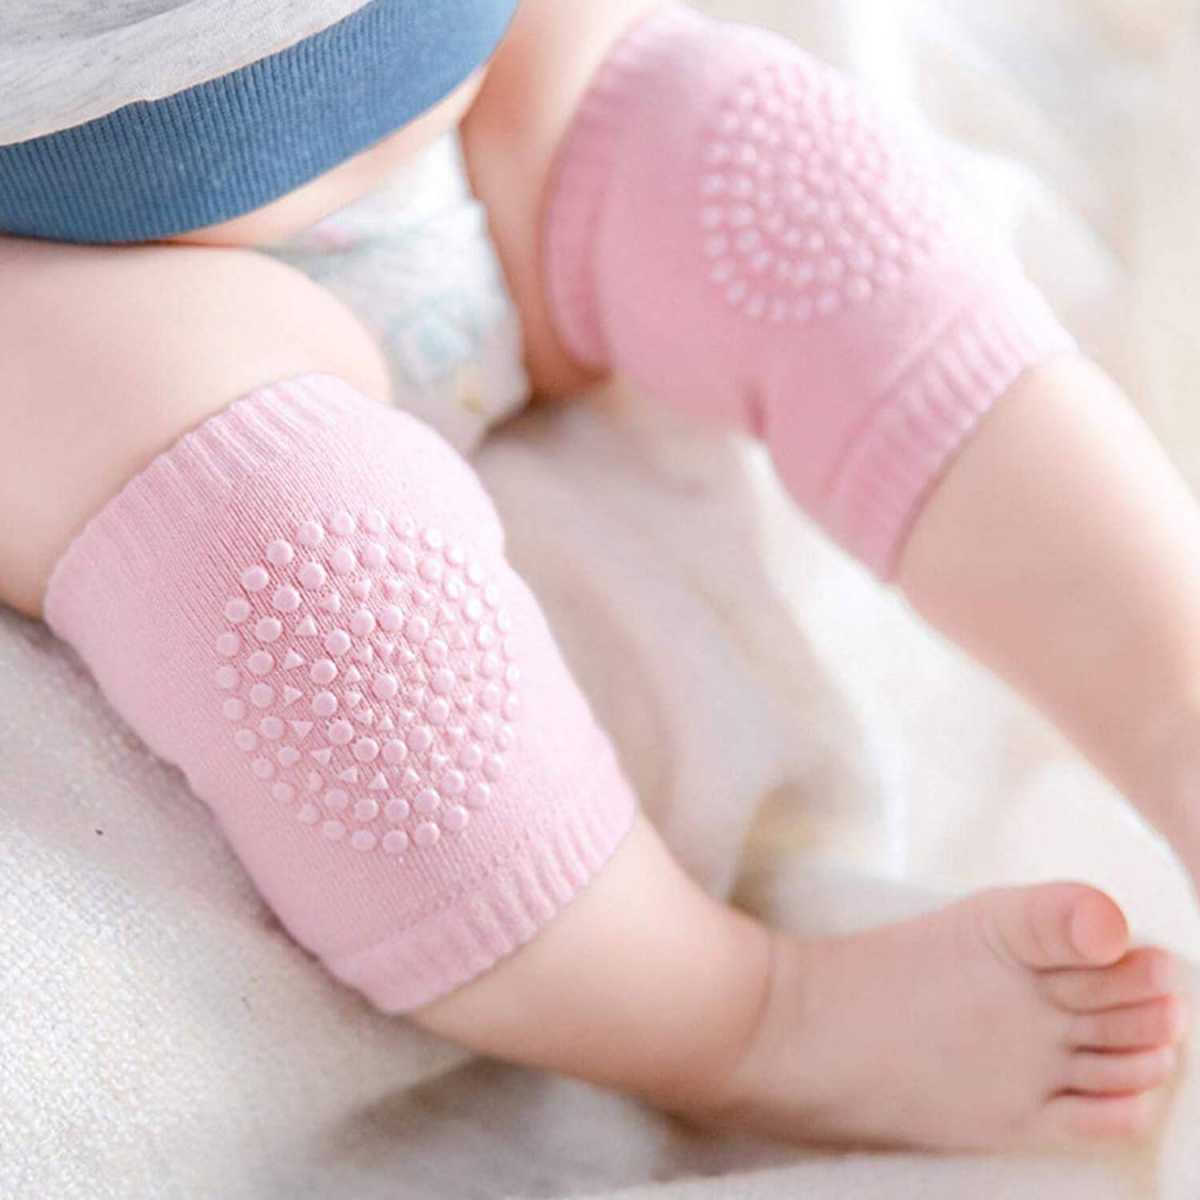 Silver Shine Baby Knee Pads Safety Crawling, Stretchable Anti-Slip Padded Soft Cotton Breathable Comfortable Knee(1 Pair,Assorted Color )